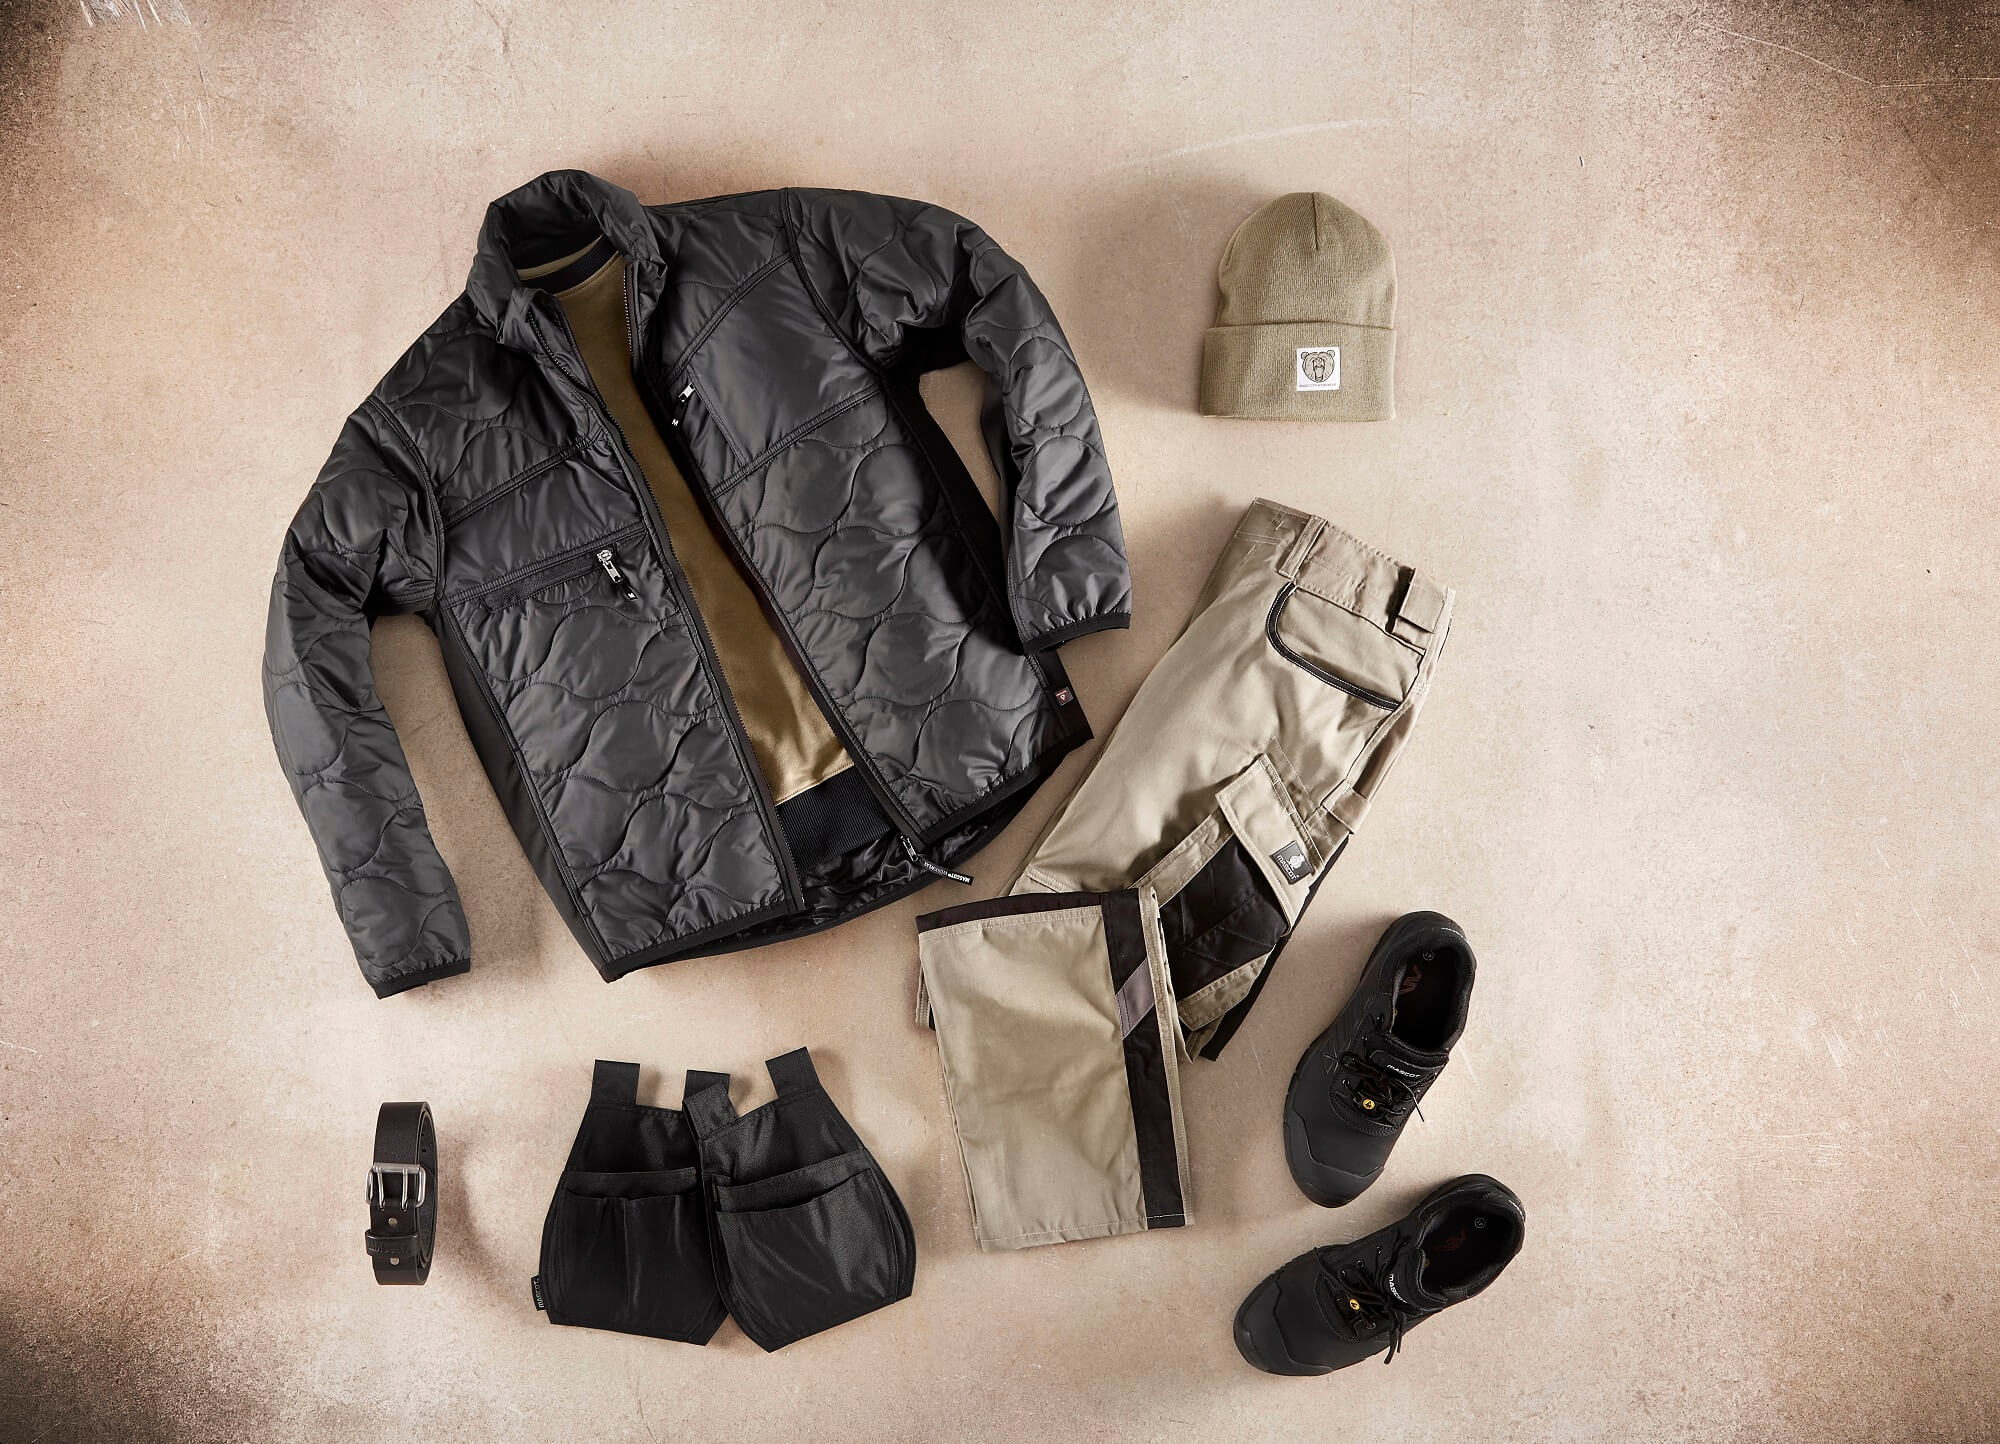 Thermal Jacket, Work Pants & Holster Pockets - Khaki - Collage